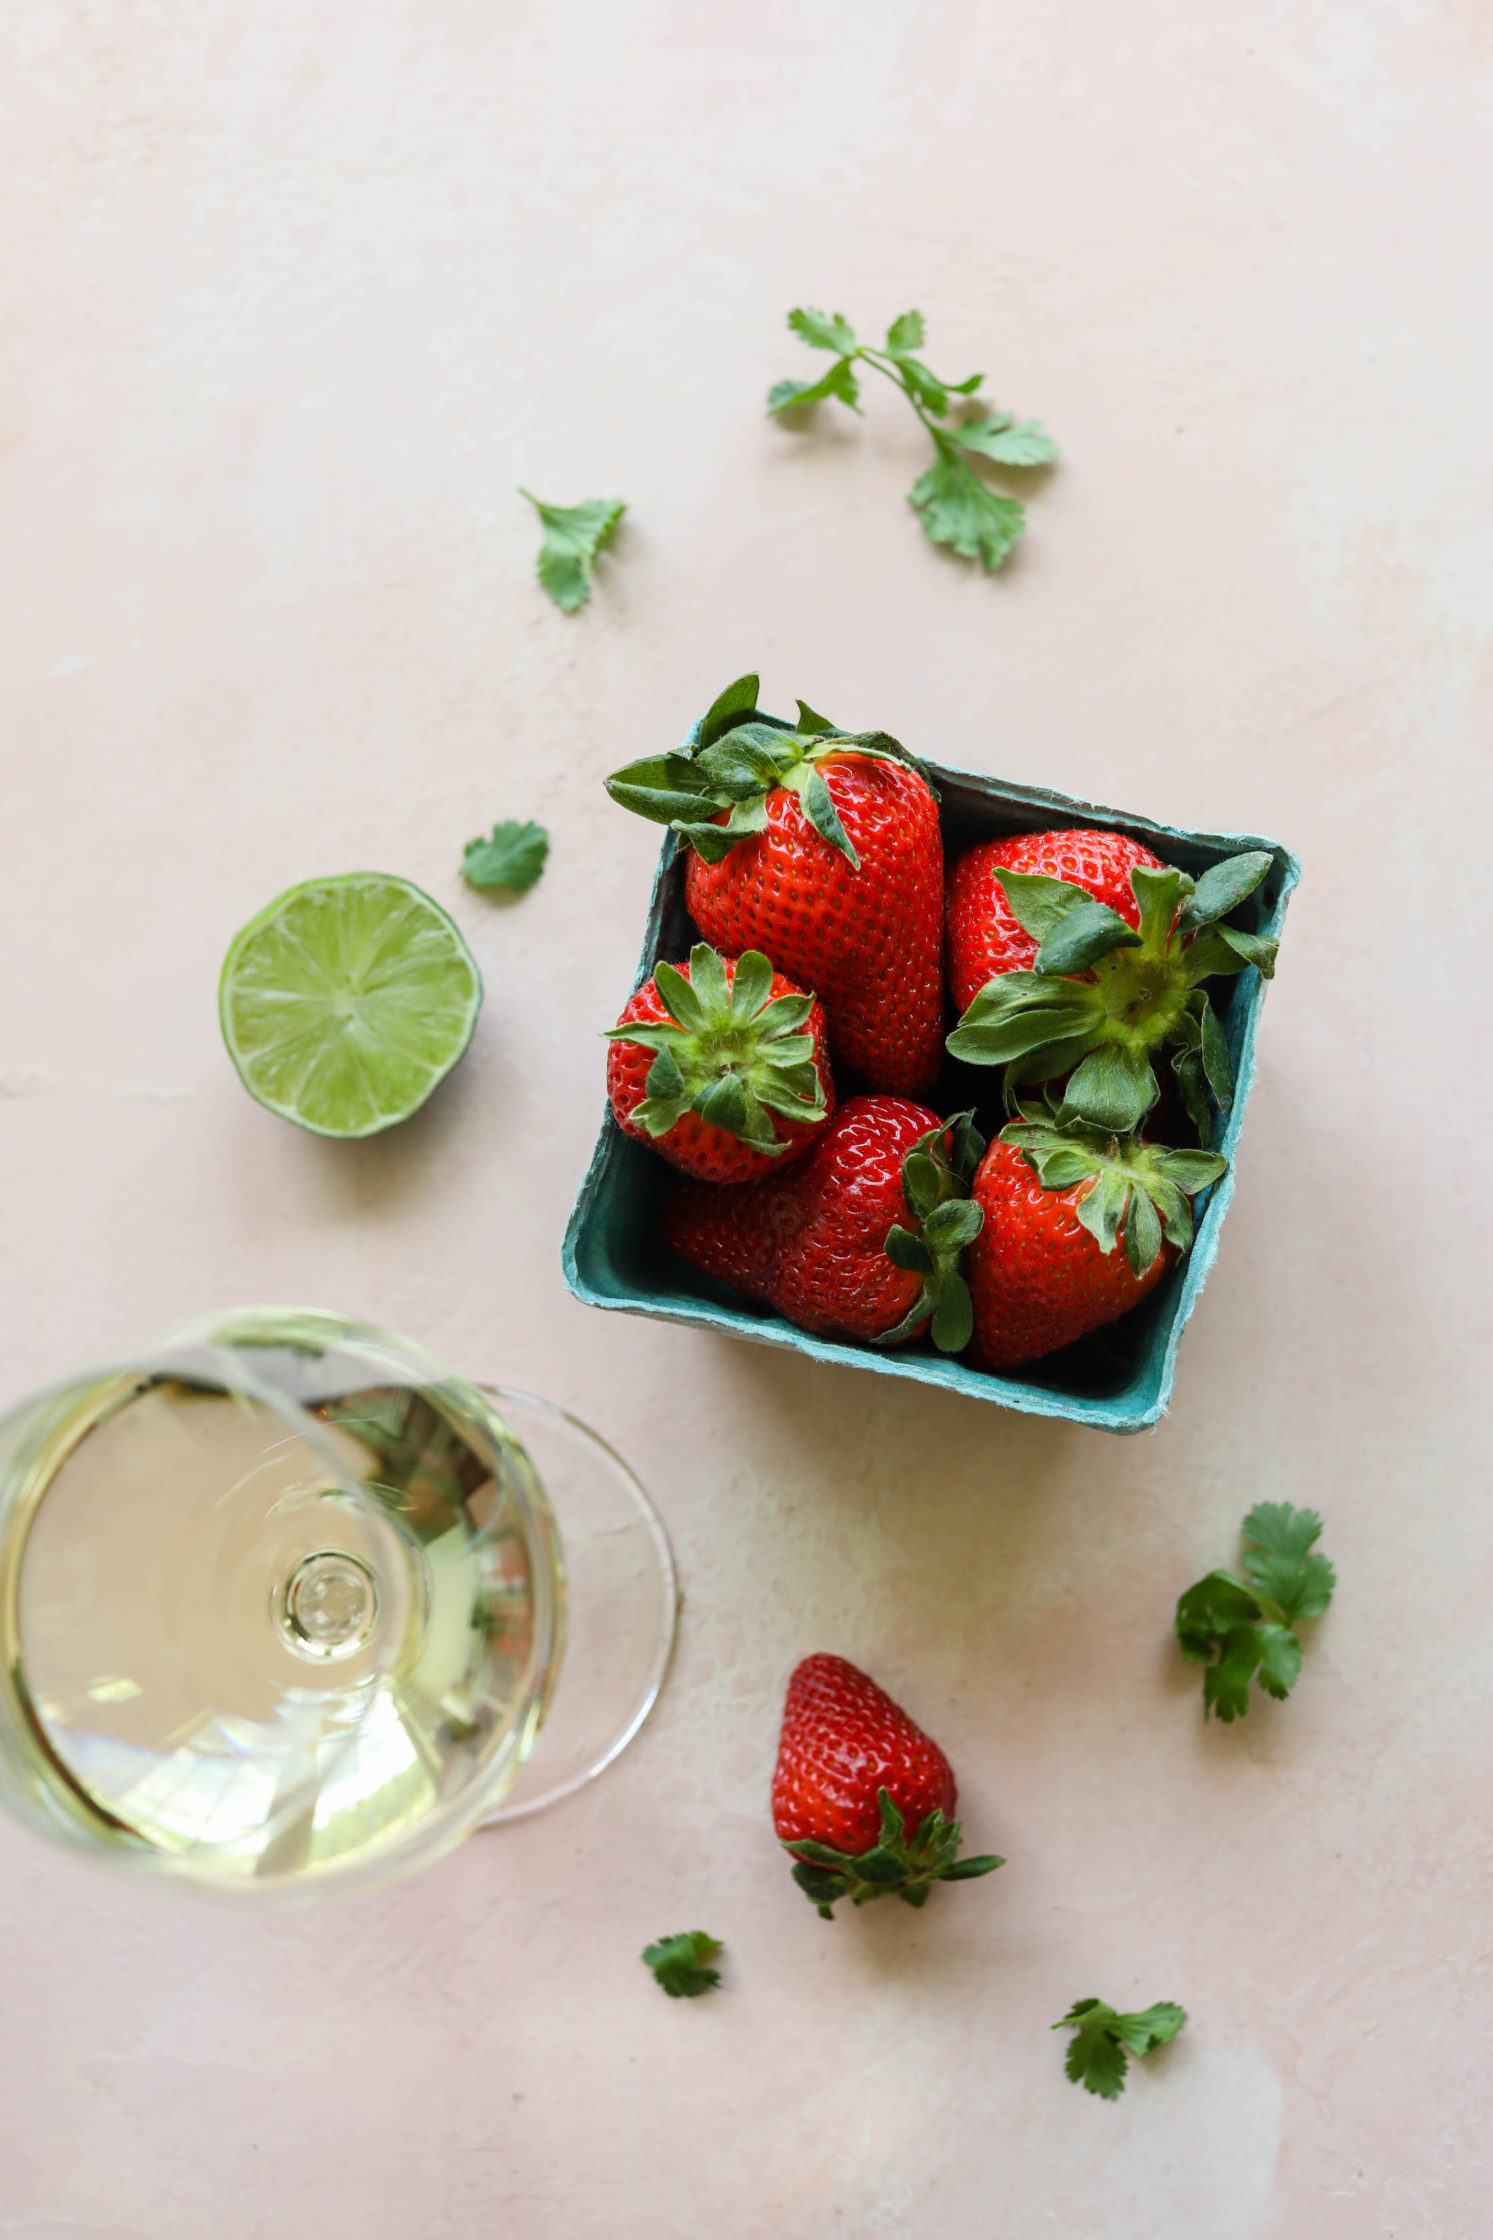 Sweet & Savory Avocado Boats with Strawberry Salsa by Flora & Vino